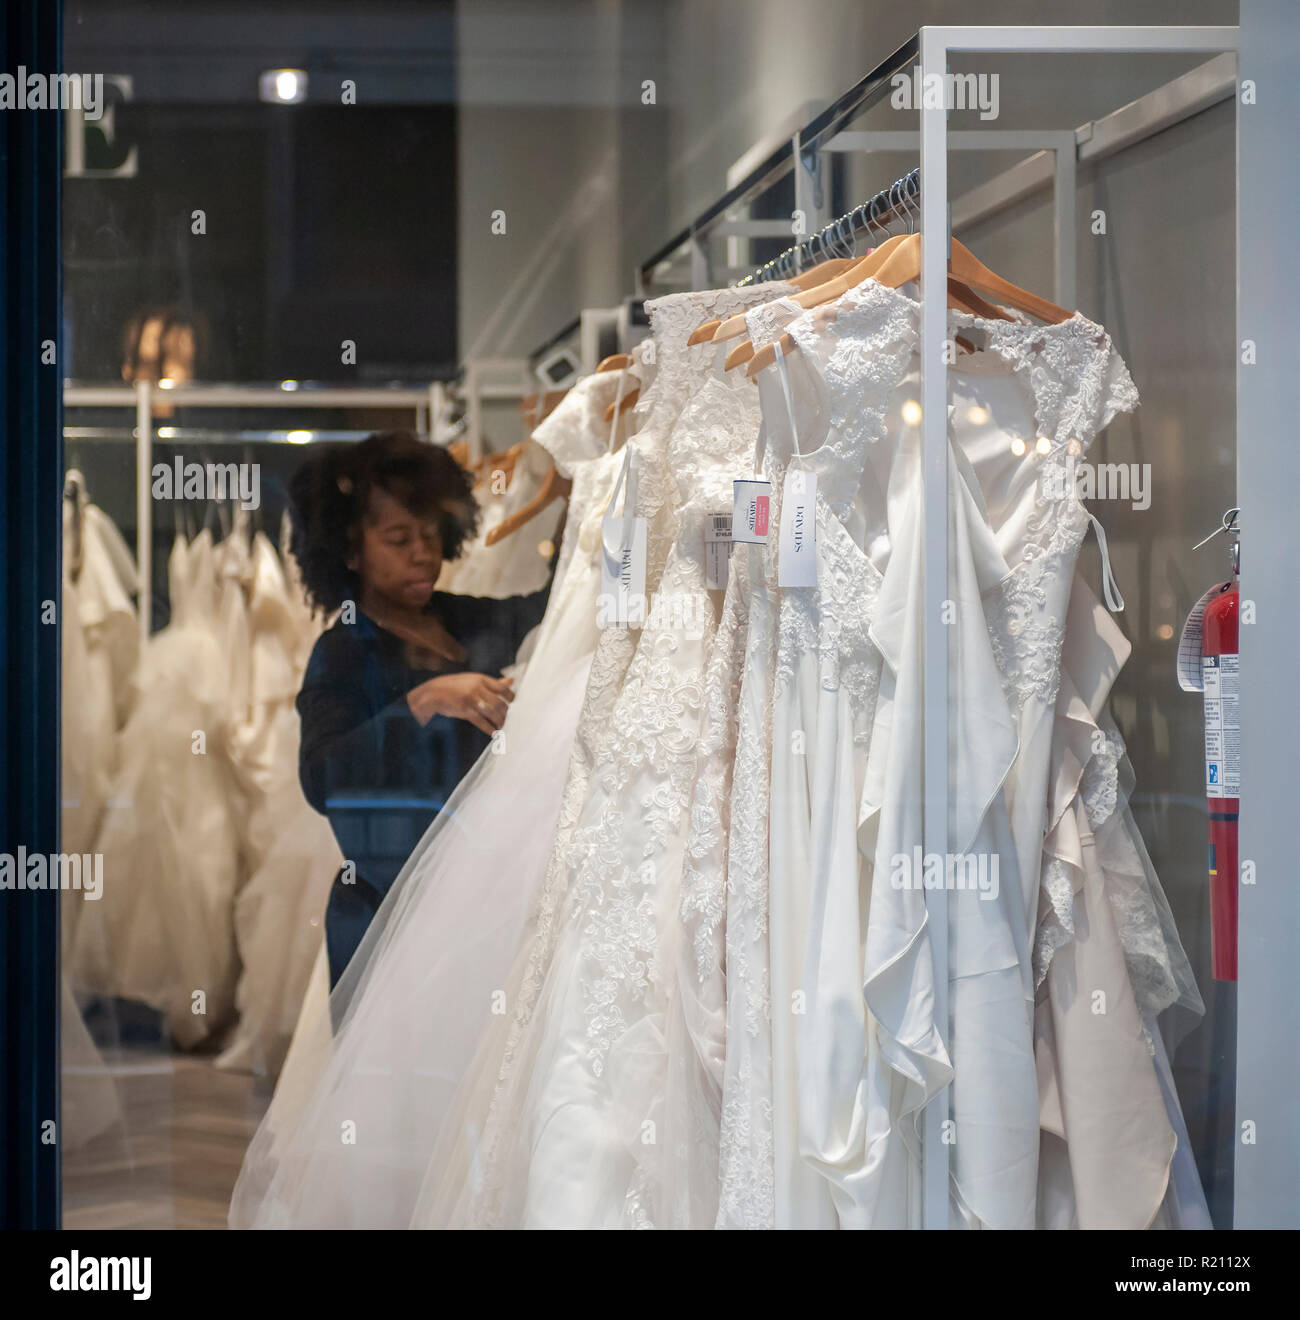 An employee arranges dresses in a David's Bridal store in the Chelsea neighborhood of New York on Sunday, November 11, 2018. David's Bridal is reported to be preparing a Chapter 11 bankruptcy filing if it cannot reach a deal with its creditors. The company has until November 14 to make the interest payment on its approximately $760 million in debt.  (© Richard B. Levine) - Stock Image